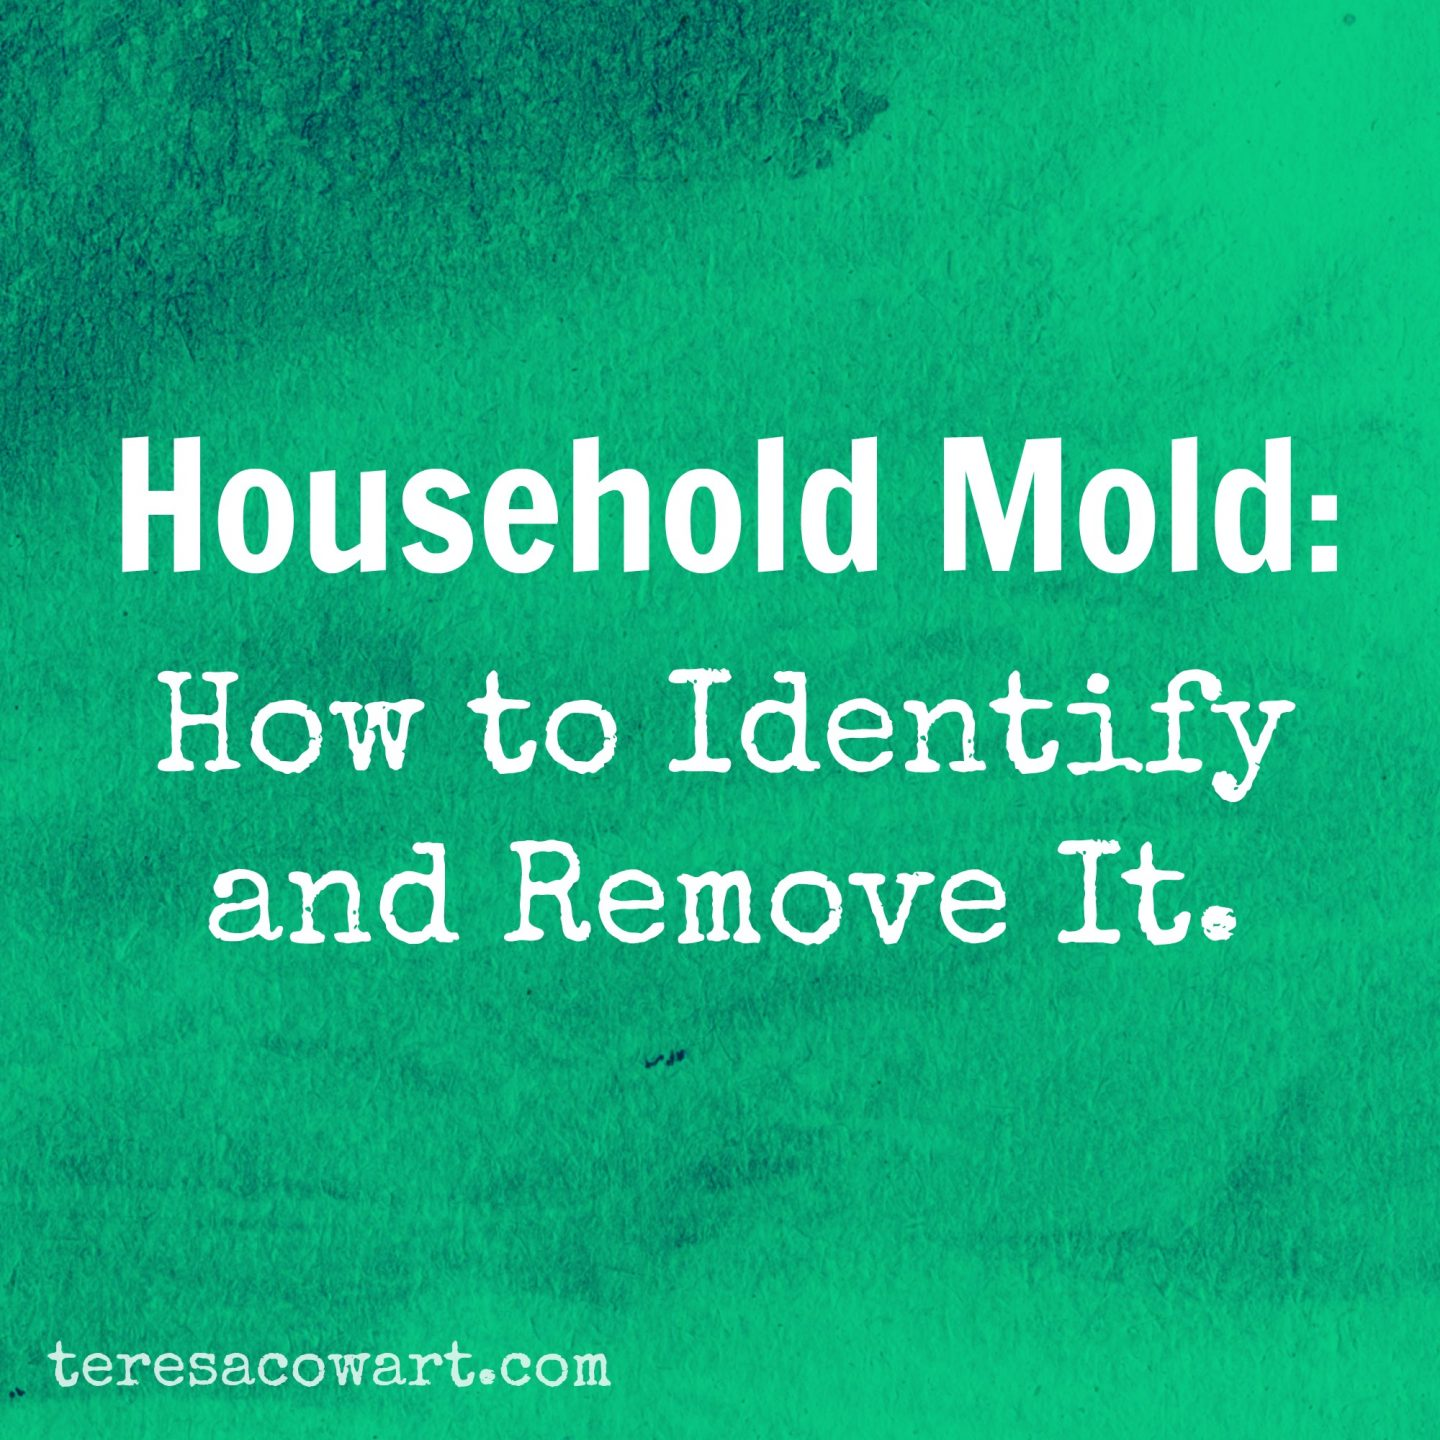 Mold in the Home: How to Identify and Remove It